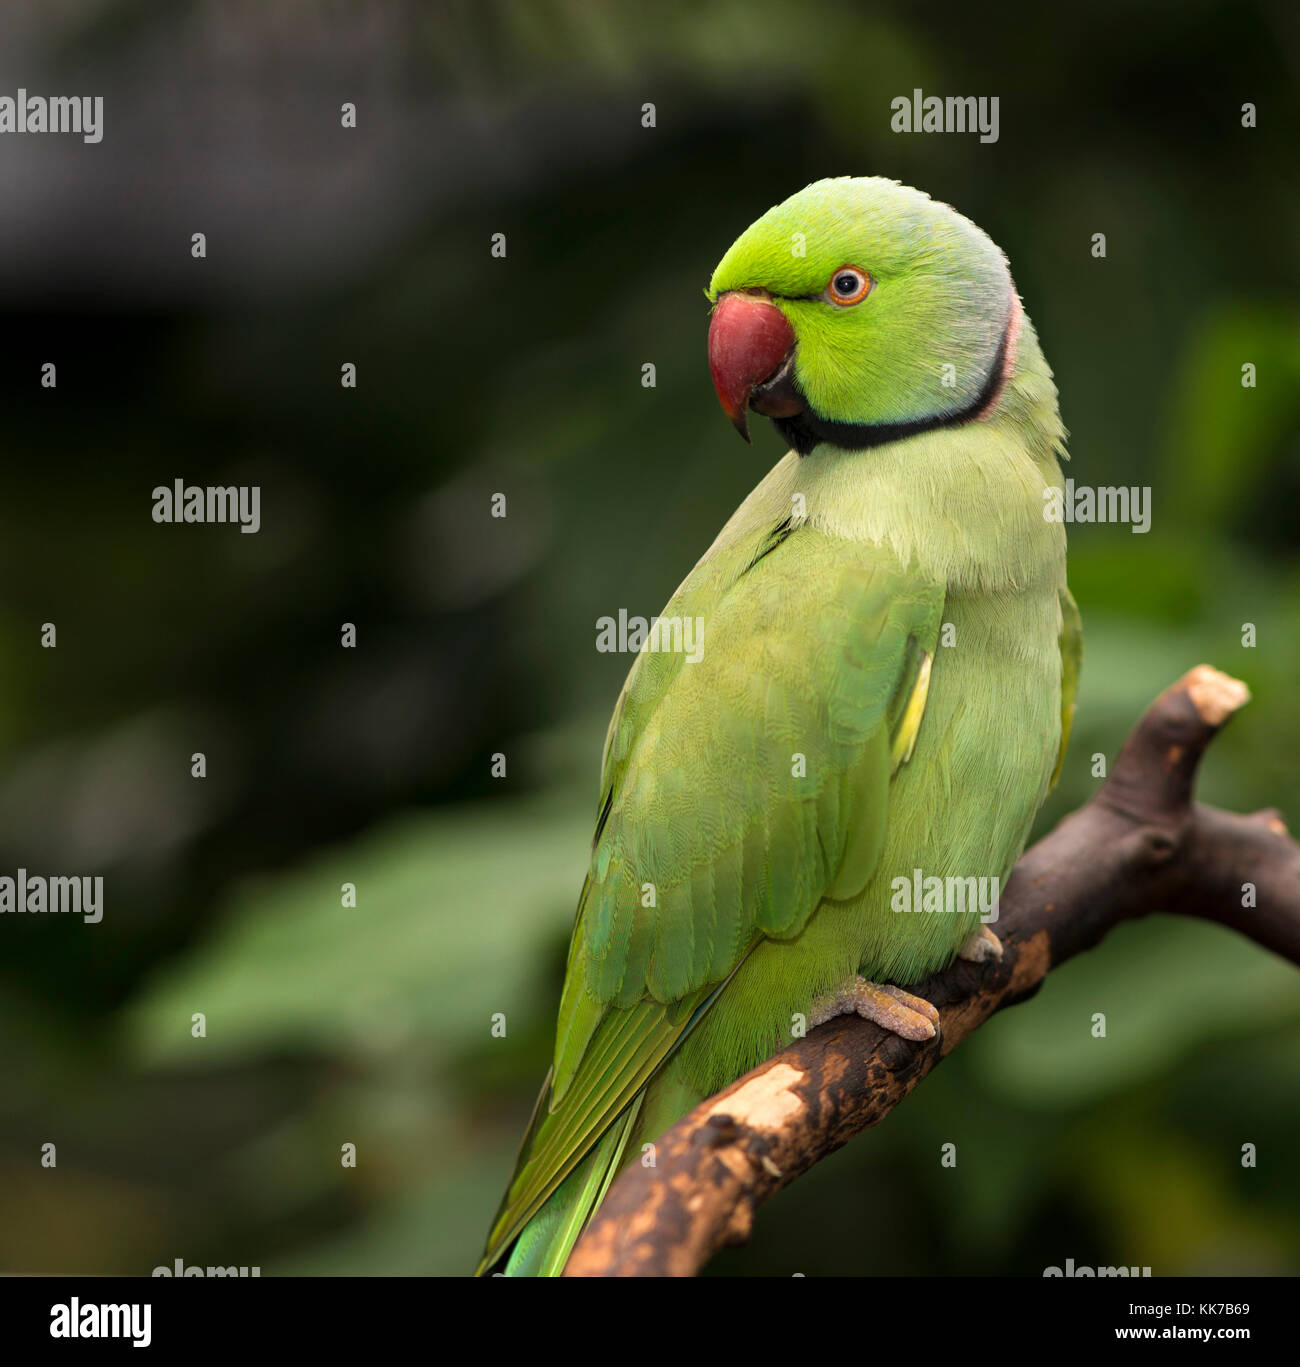 Indian Ringneck Parrot Perched On A Branch Stock Photo 166734241